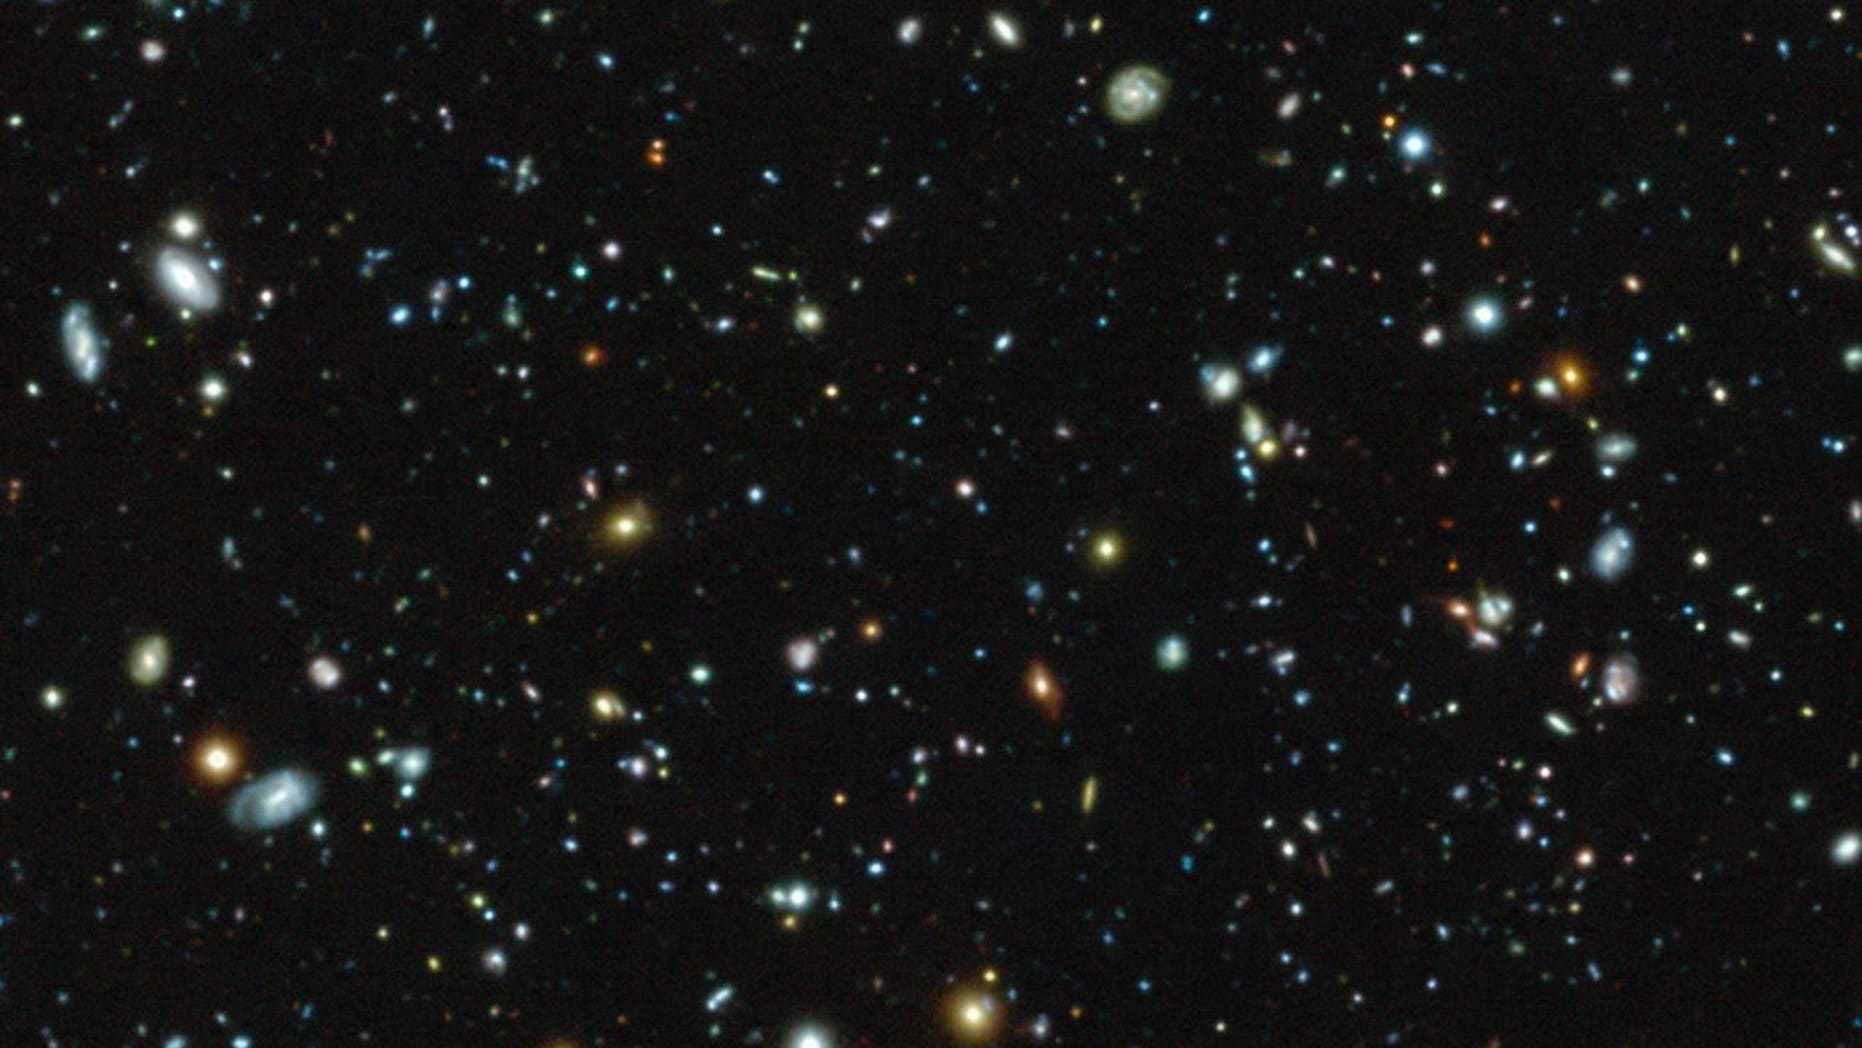 The European Southern Observatory's Muse instrument on the Very Large Telescope in Chile captured this view of galaxies in a region of sky included in the Hubble Space Telescope's Ultra Deep Field survey. Muse discovered 72 never-before-seen galaxies in the region.